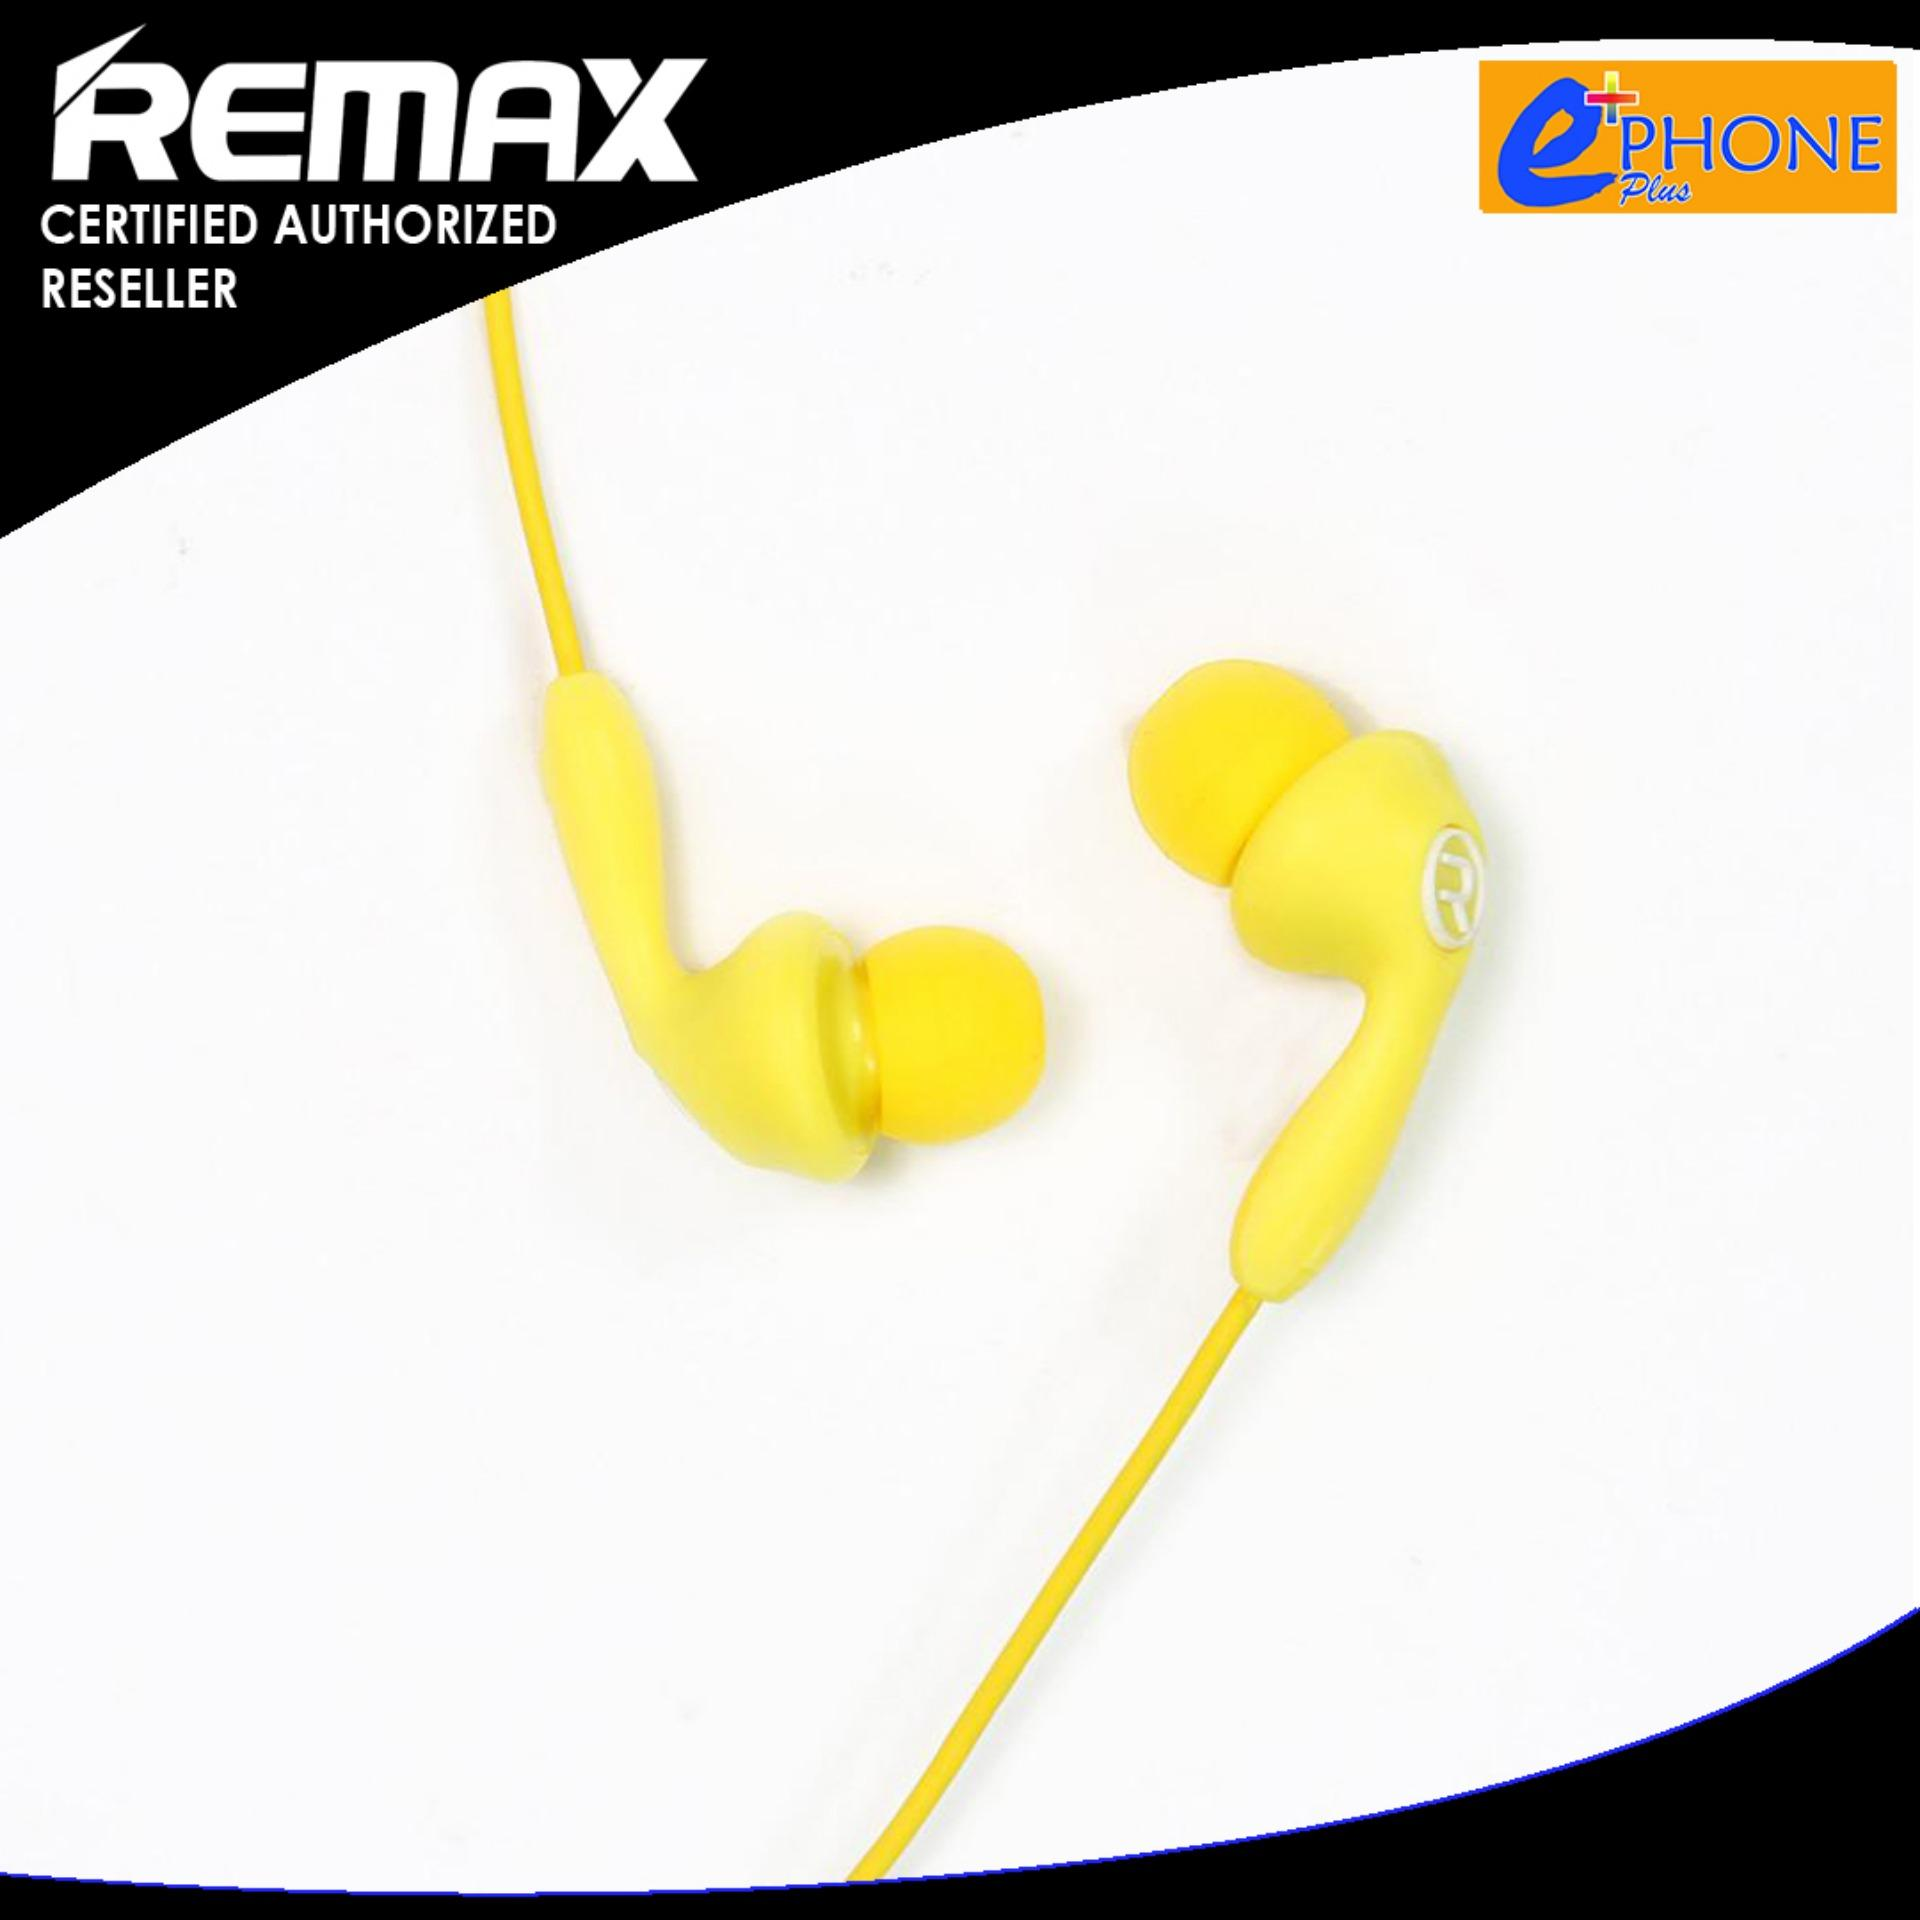 Buy Sell Cheapest Remax Rm510 Wired Best Quality Product Deals Handsfree Earphone Rm 305m With Volume Control Original 505 Candy Colors In Ear High Fidelit Unit Flexible Earphones